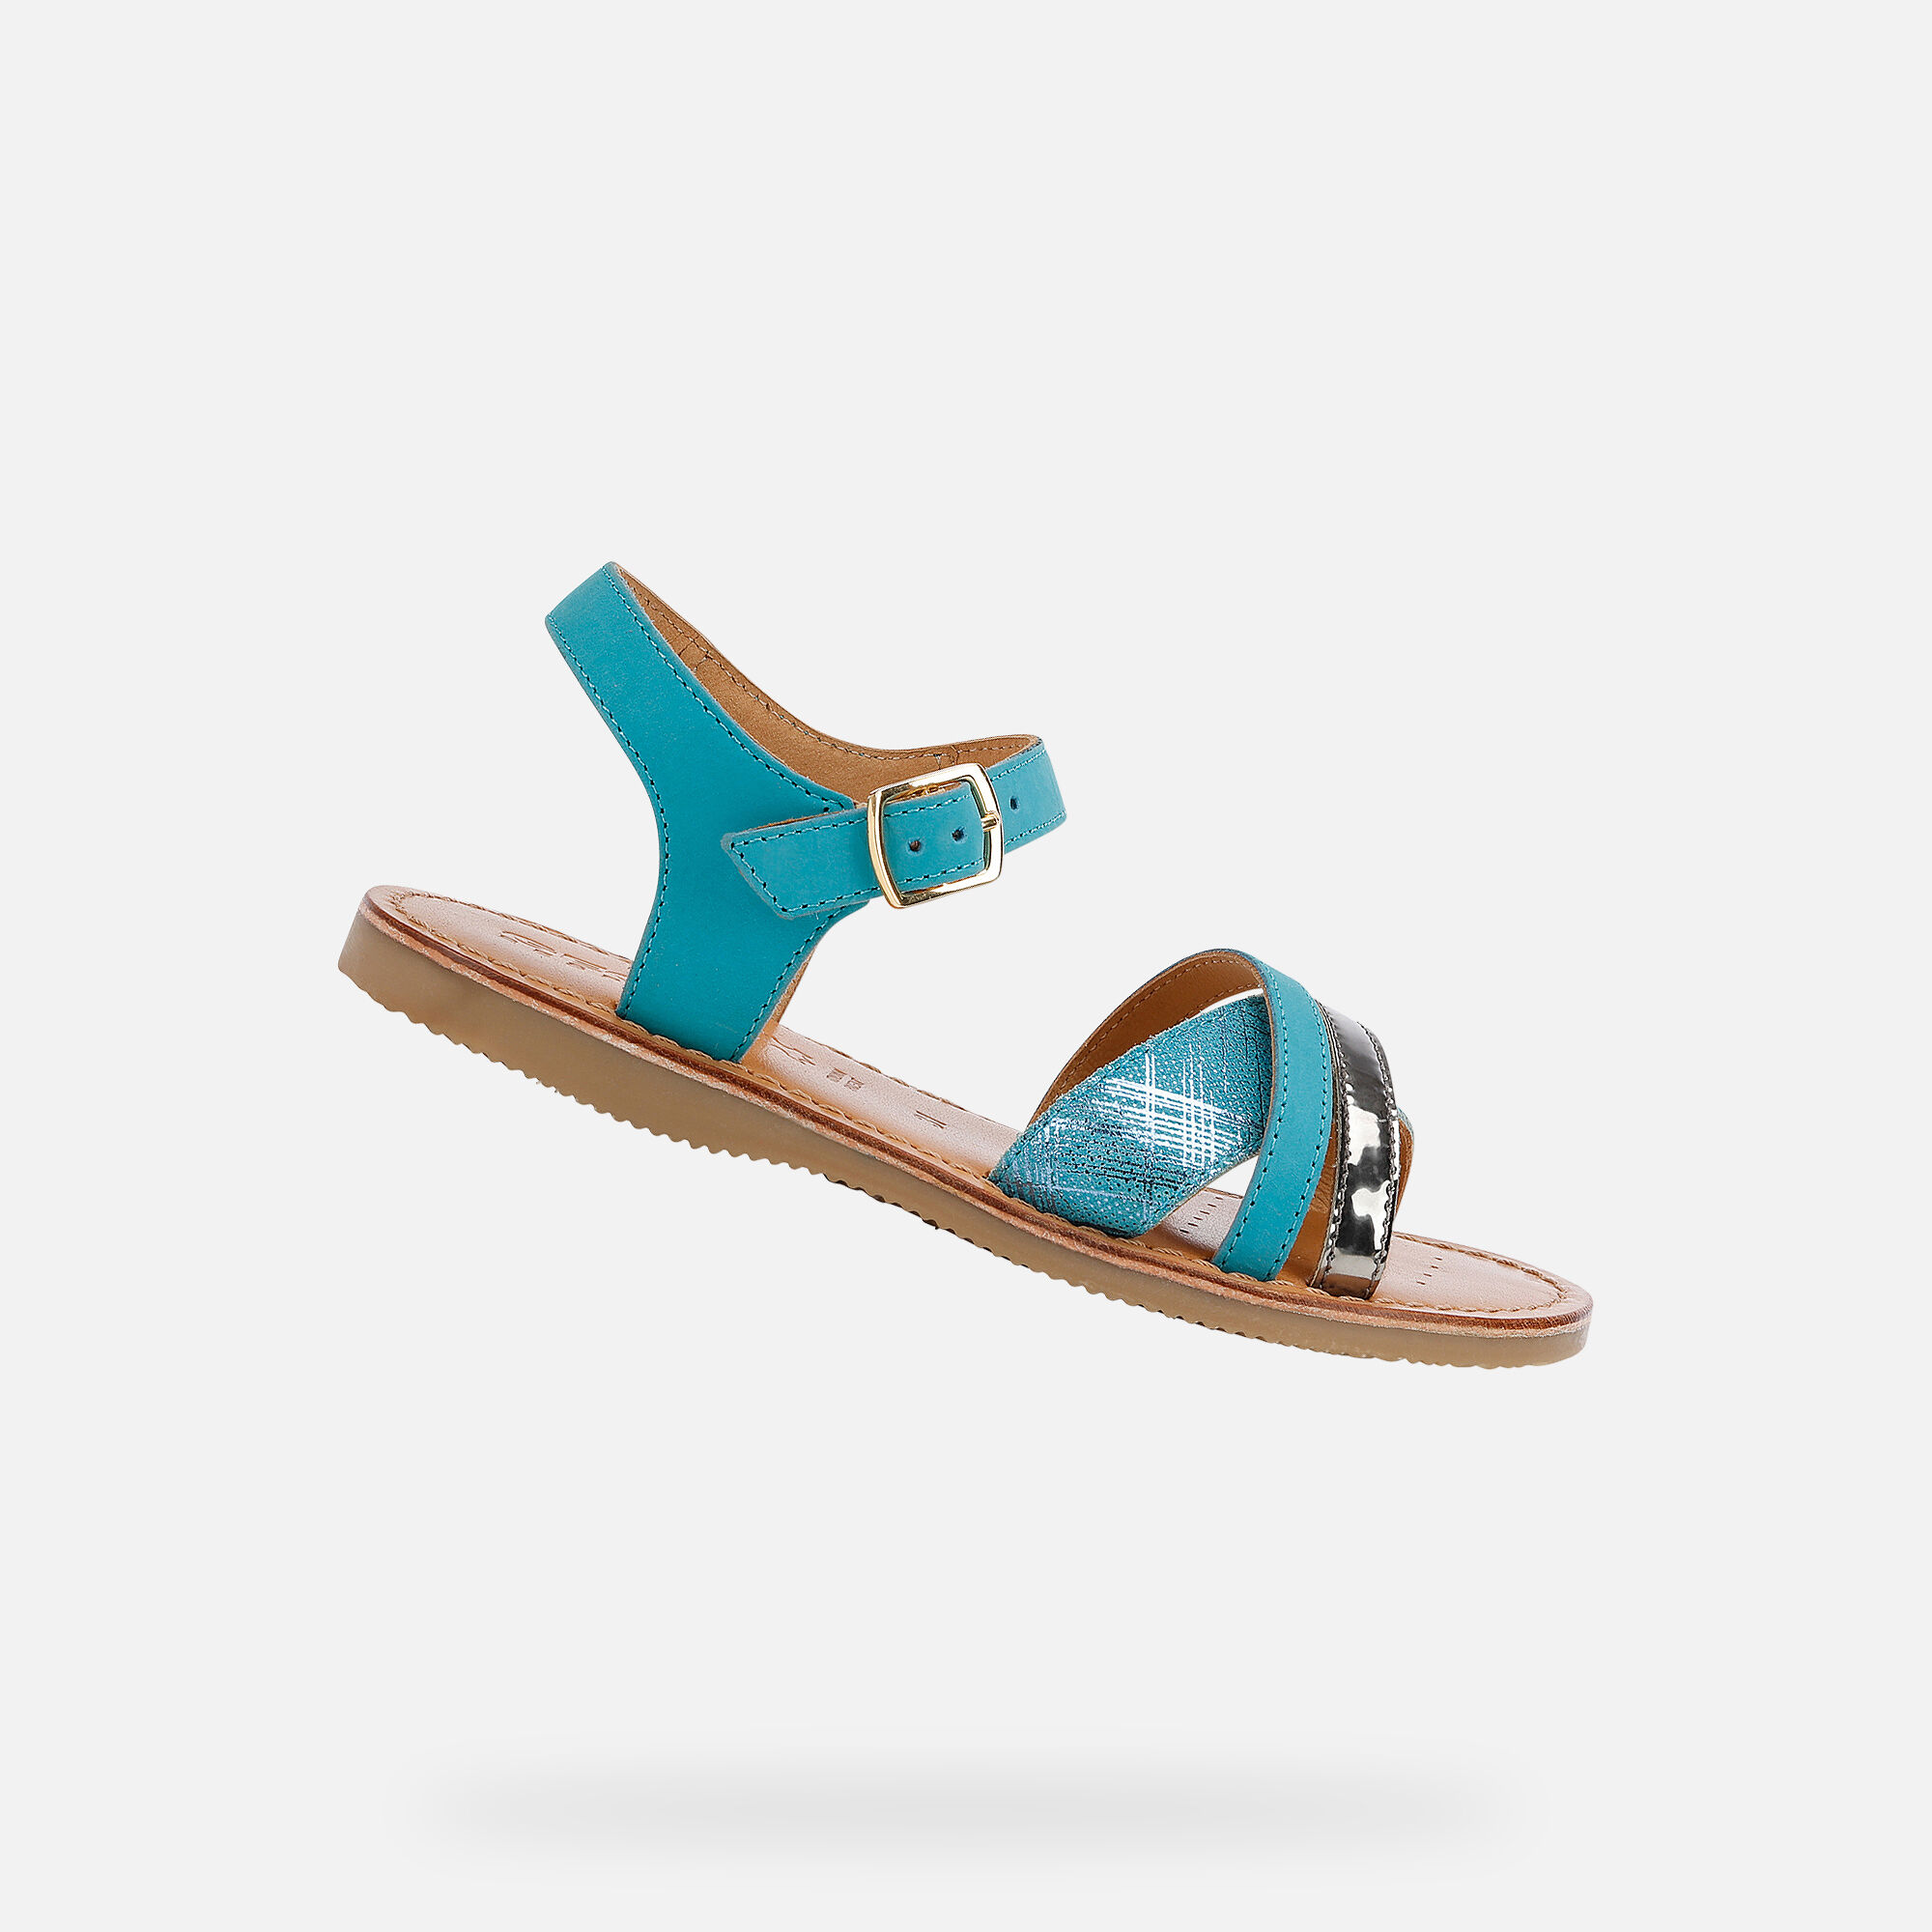 Geox EOLIE Girl: Turquoise Sandals